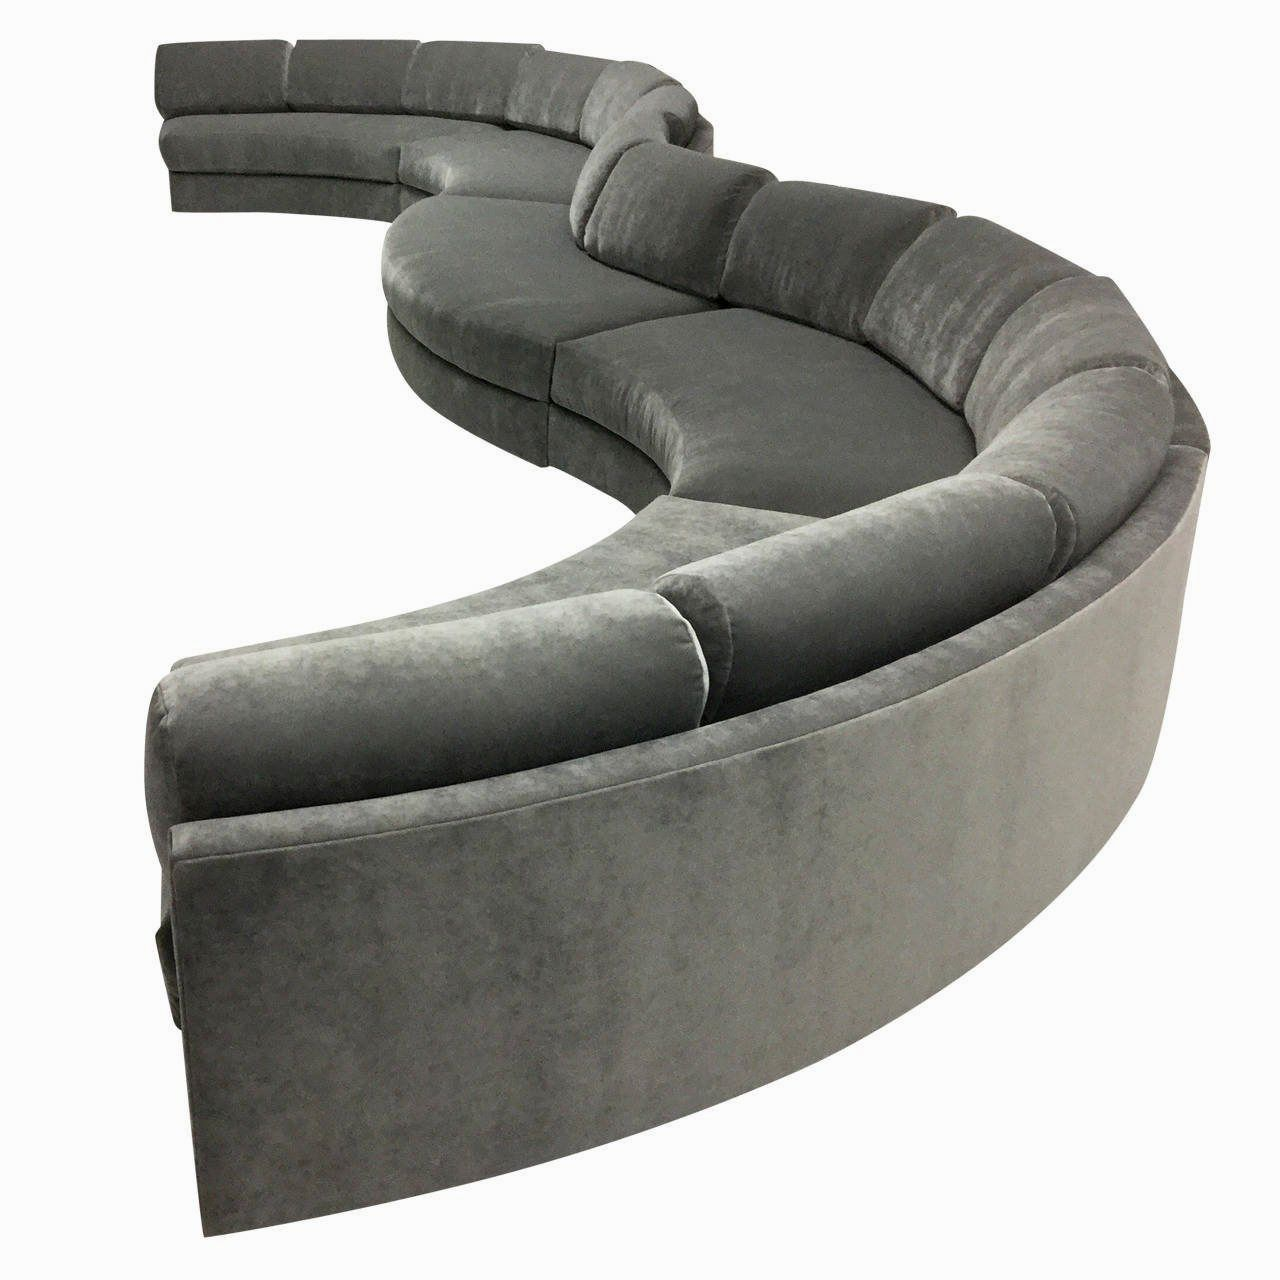 new circle sectional sofa picture-Fascinating Circle Sectional sofa Image